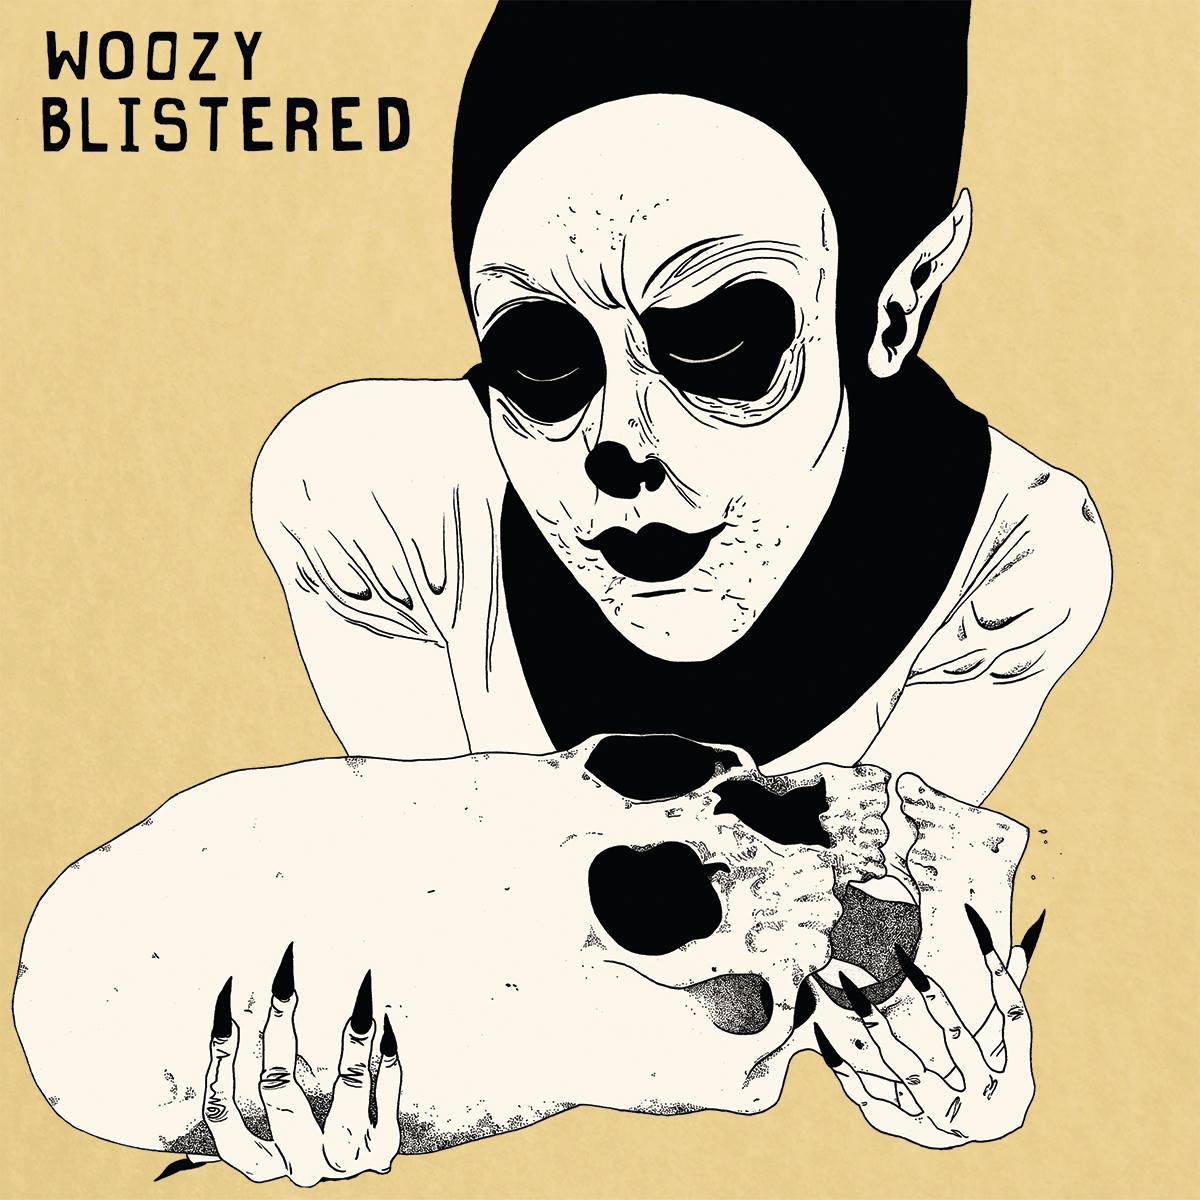 """16. WOOZY 